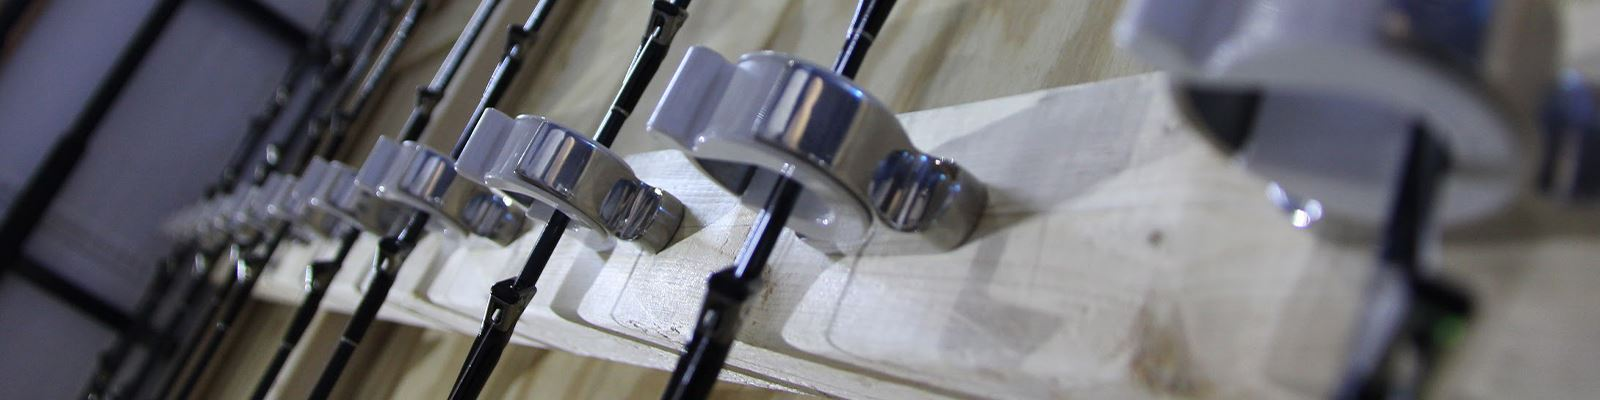 sport-fishing-rod-holders-f16-2700